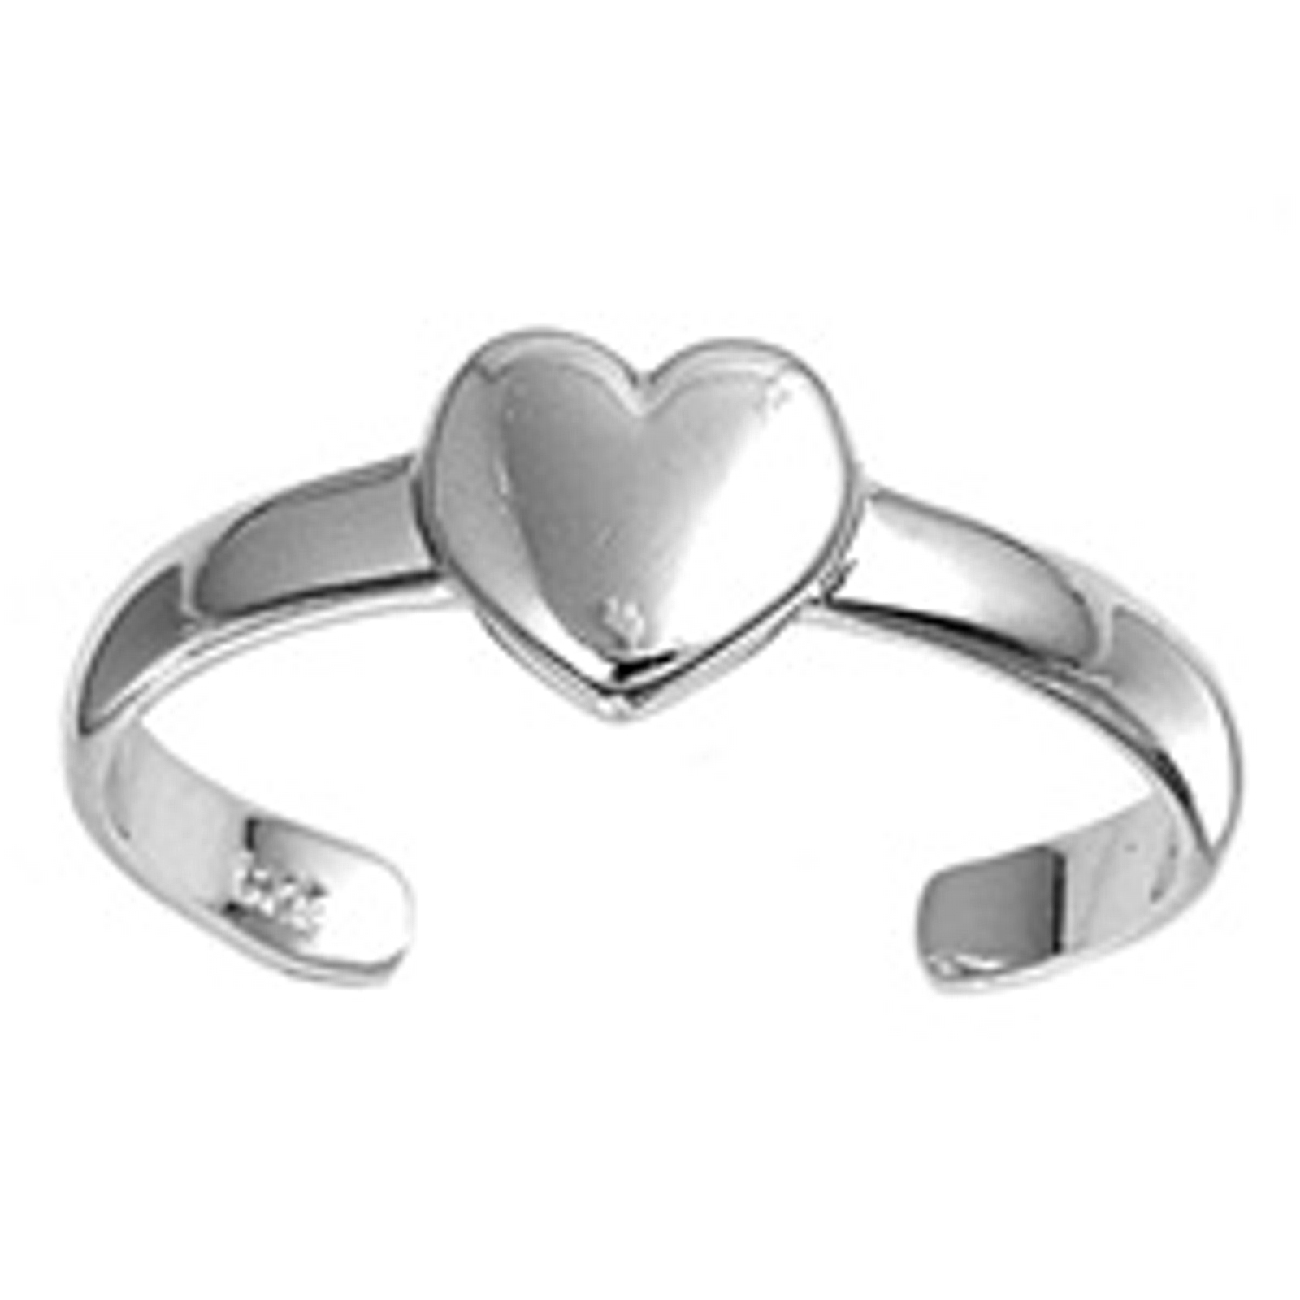 Solid Heart Adjustable Toe Ring